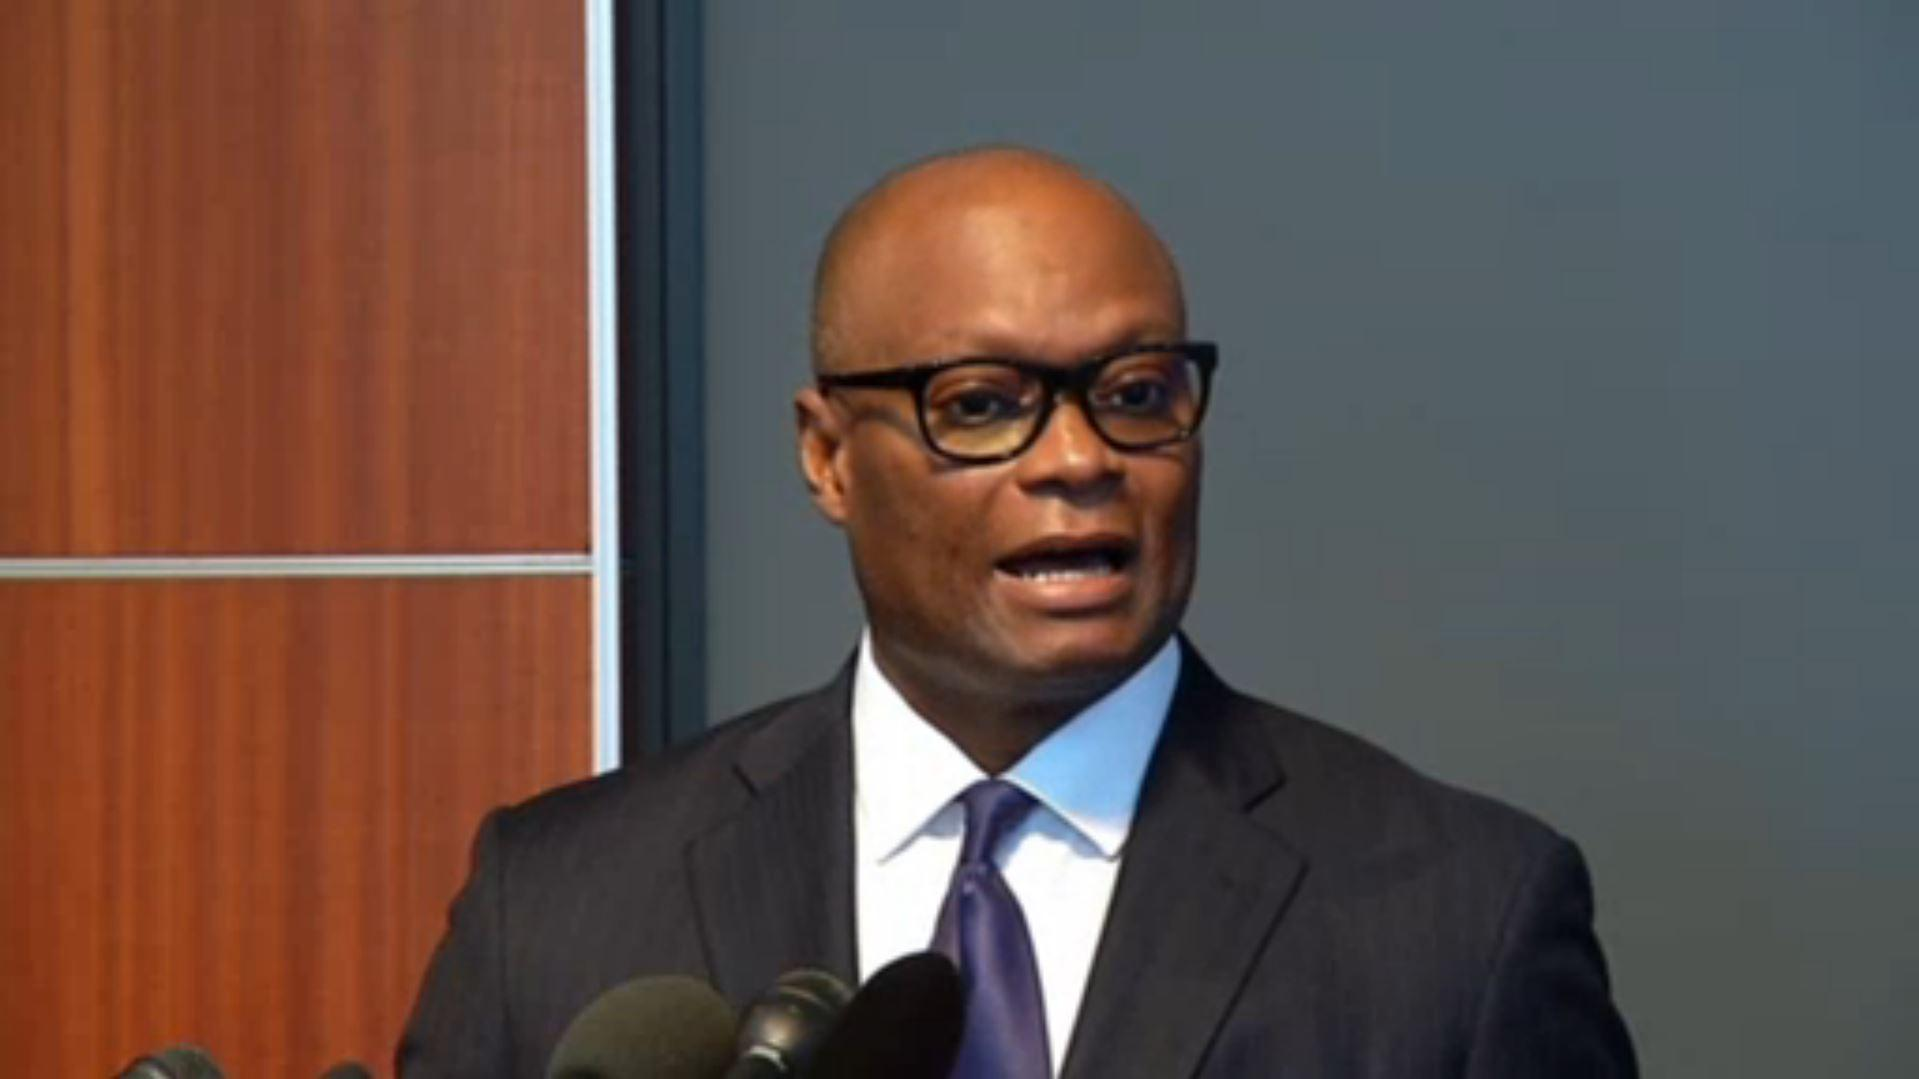 On retirement, Dallas police chief says 'it's time to go'